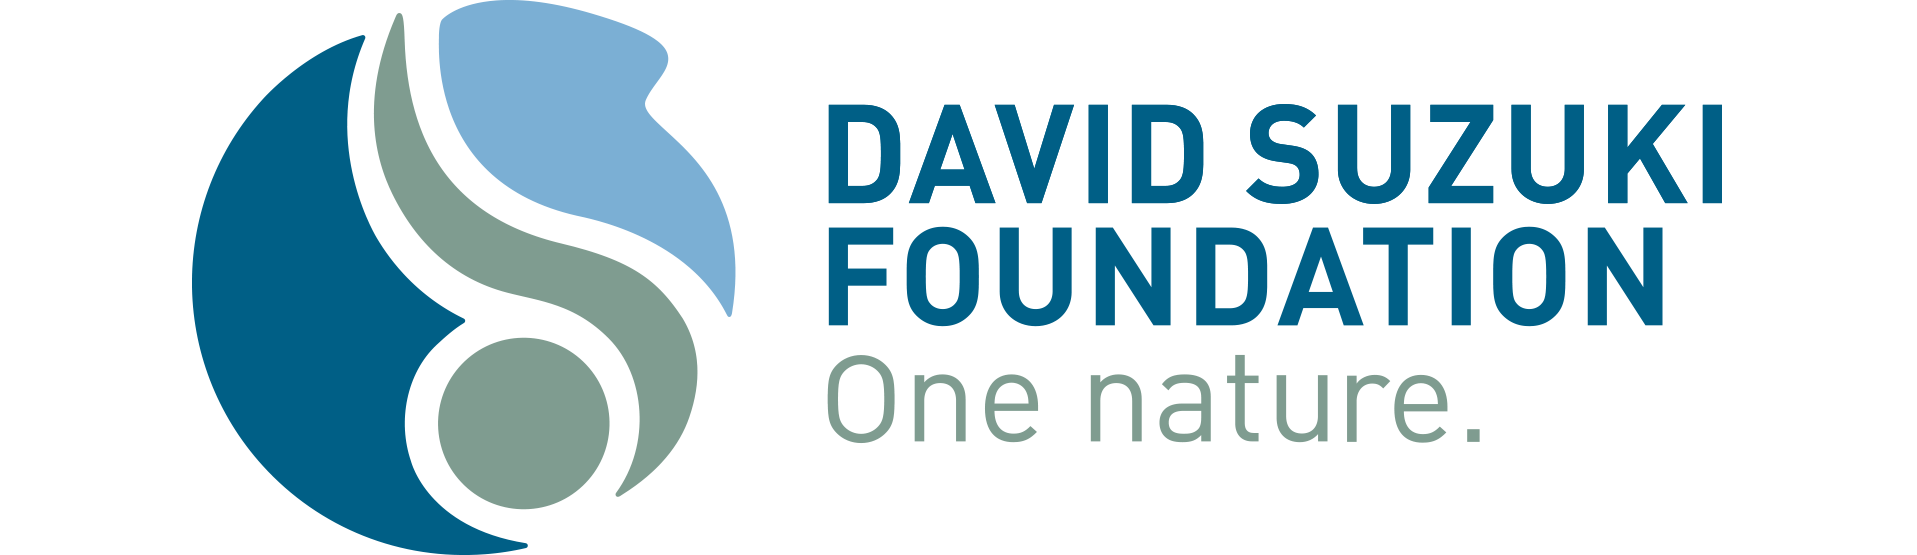 David Suzuki Foundation logo: One nature.